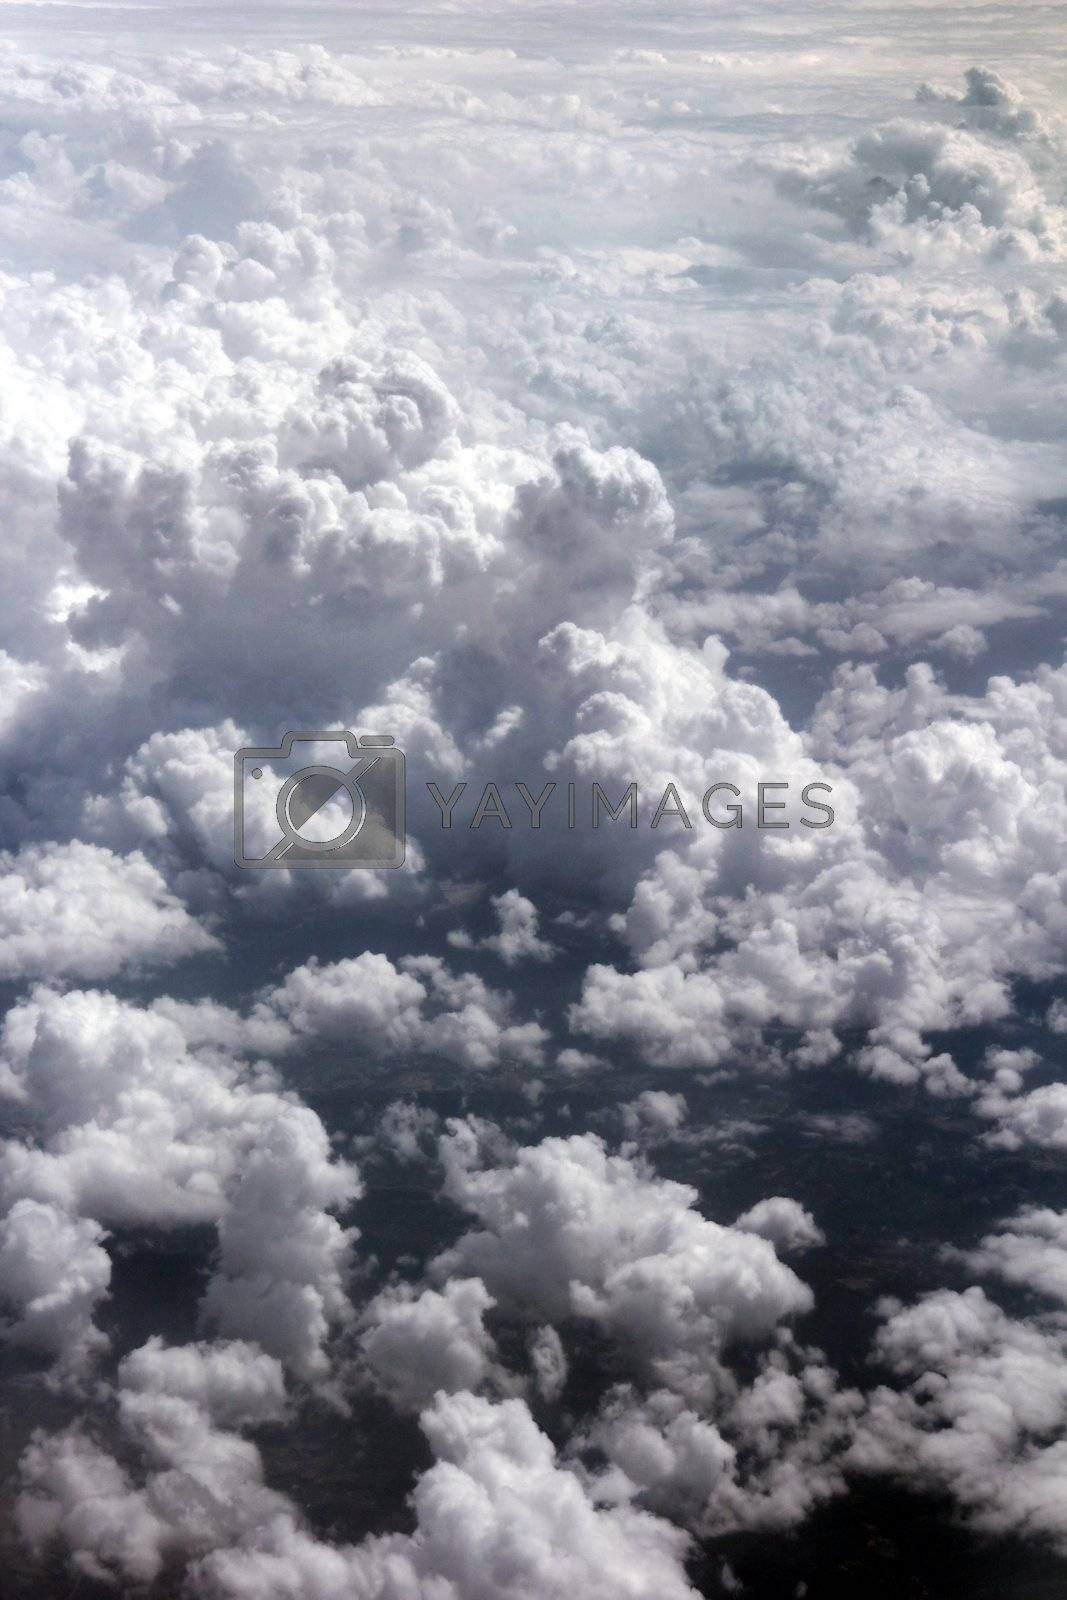 clouds on the sky from a plane above